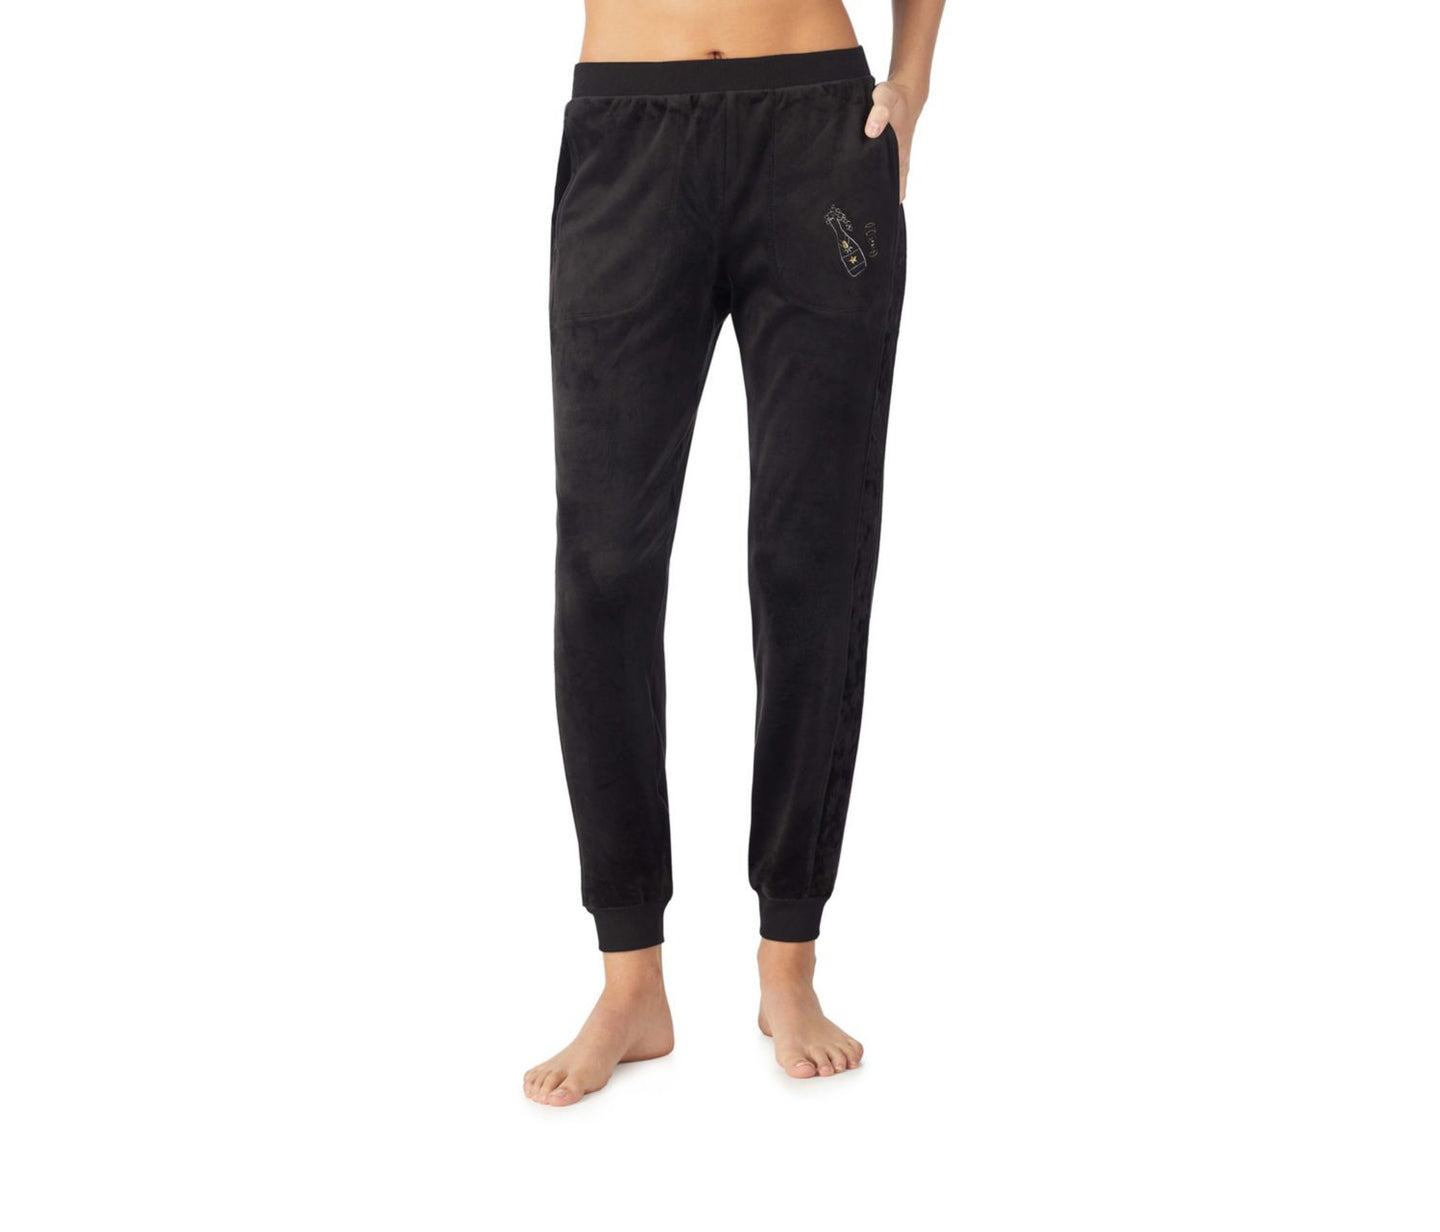 DREAM ON VELOUR JOGGER BLACK - APPAREL - Betsey Johnson